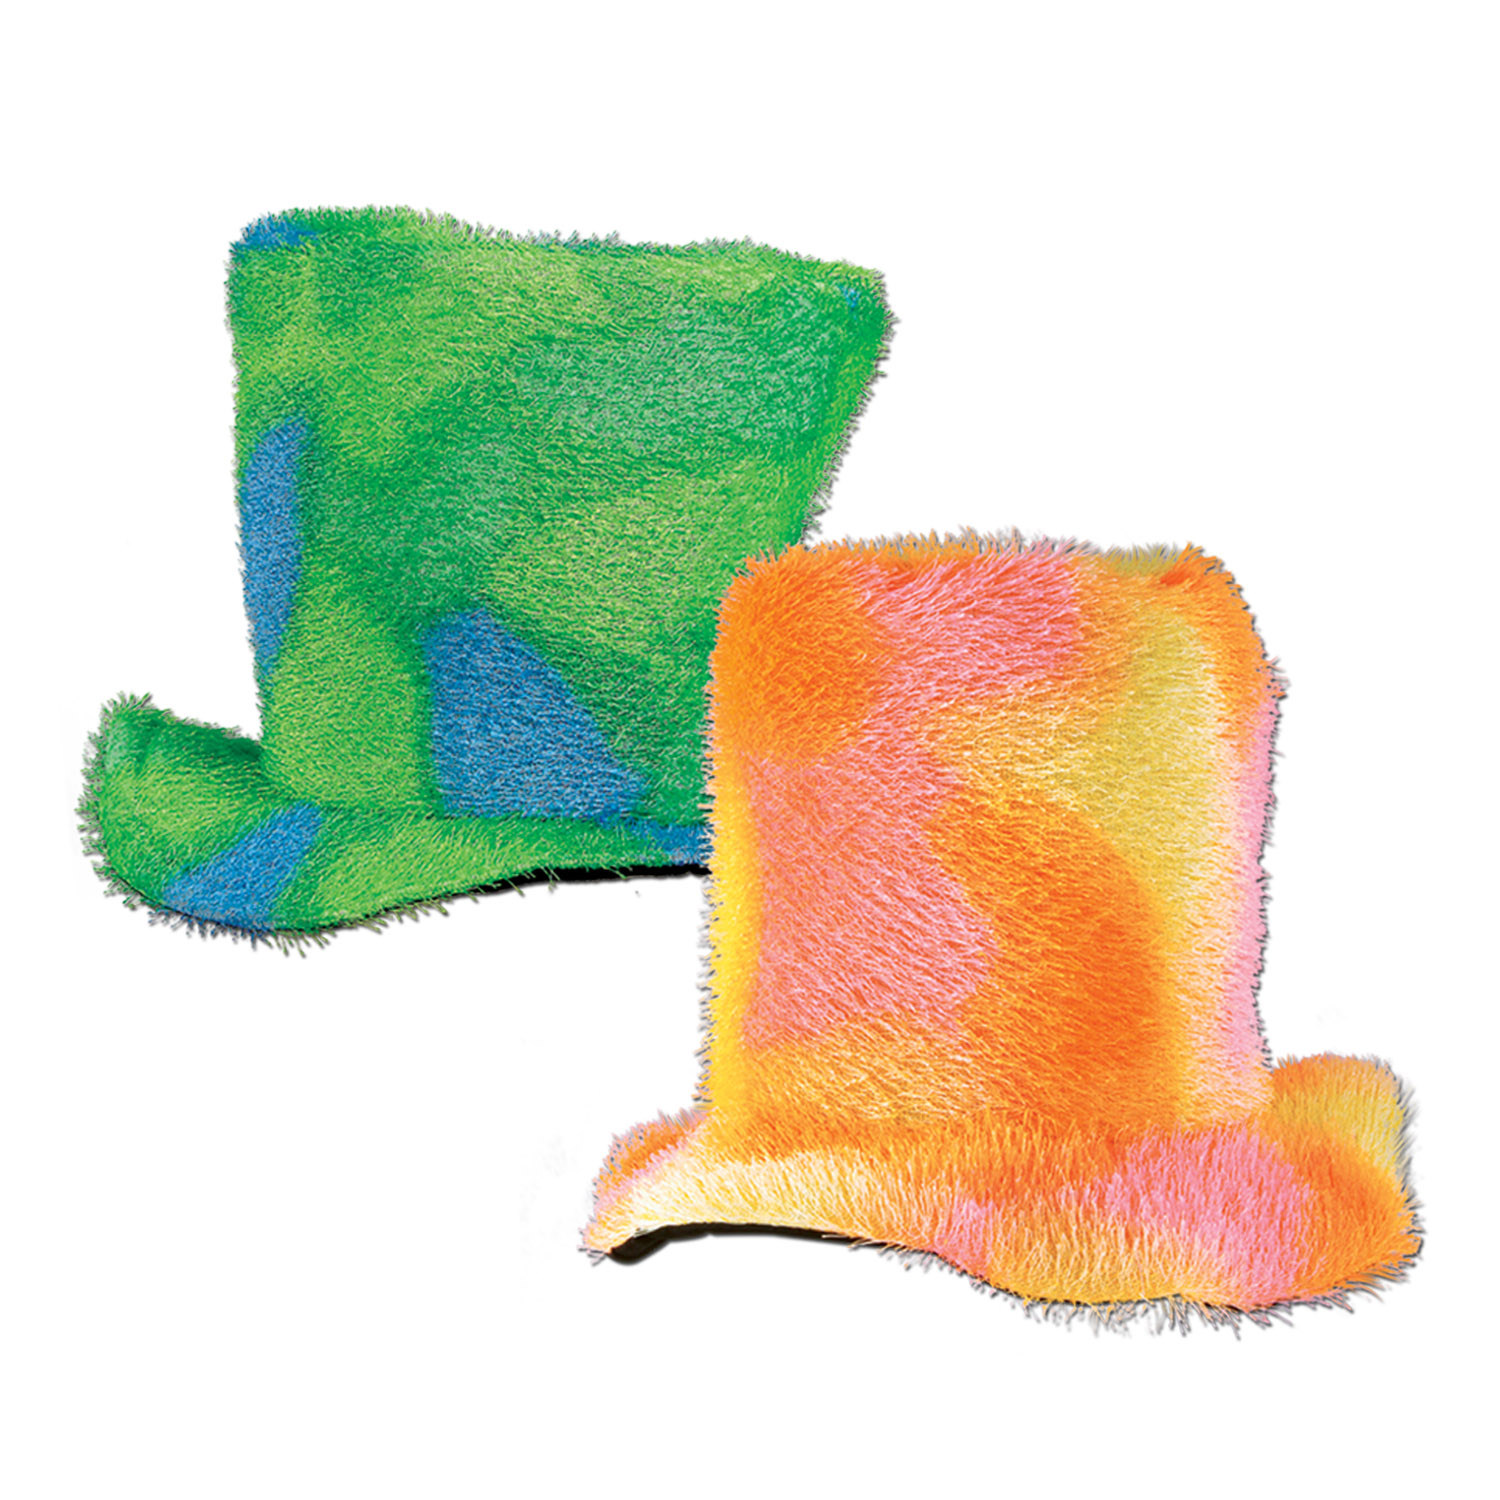 1970s style fuzzy hat in green and yellow